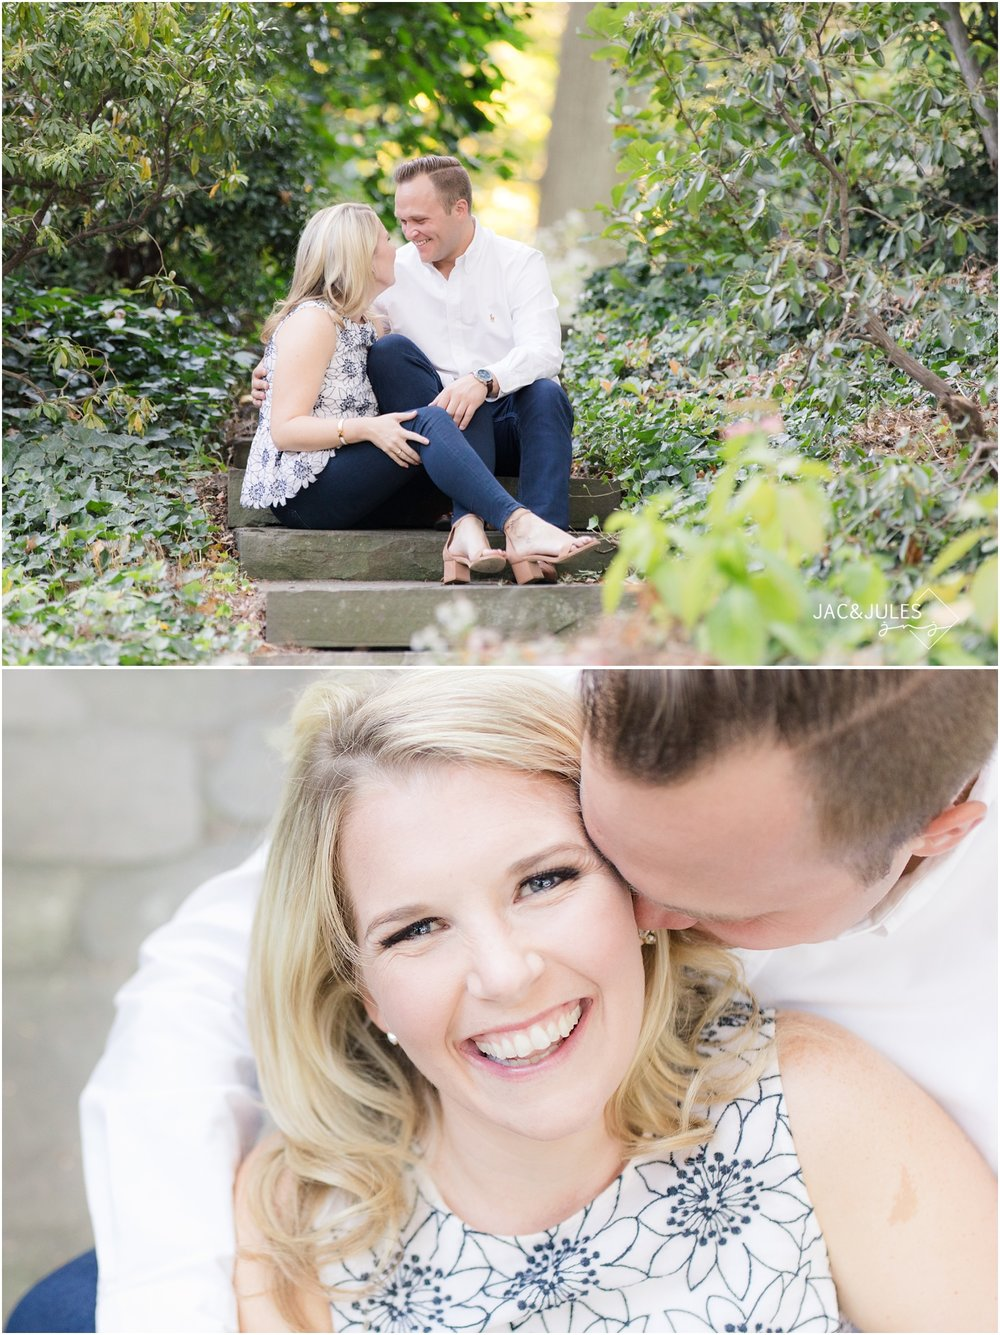 Fun casual Engagement photos at Van Vleck House and Gardens in Montclair, NJ.